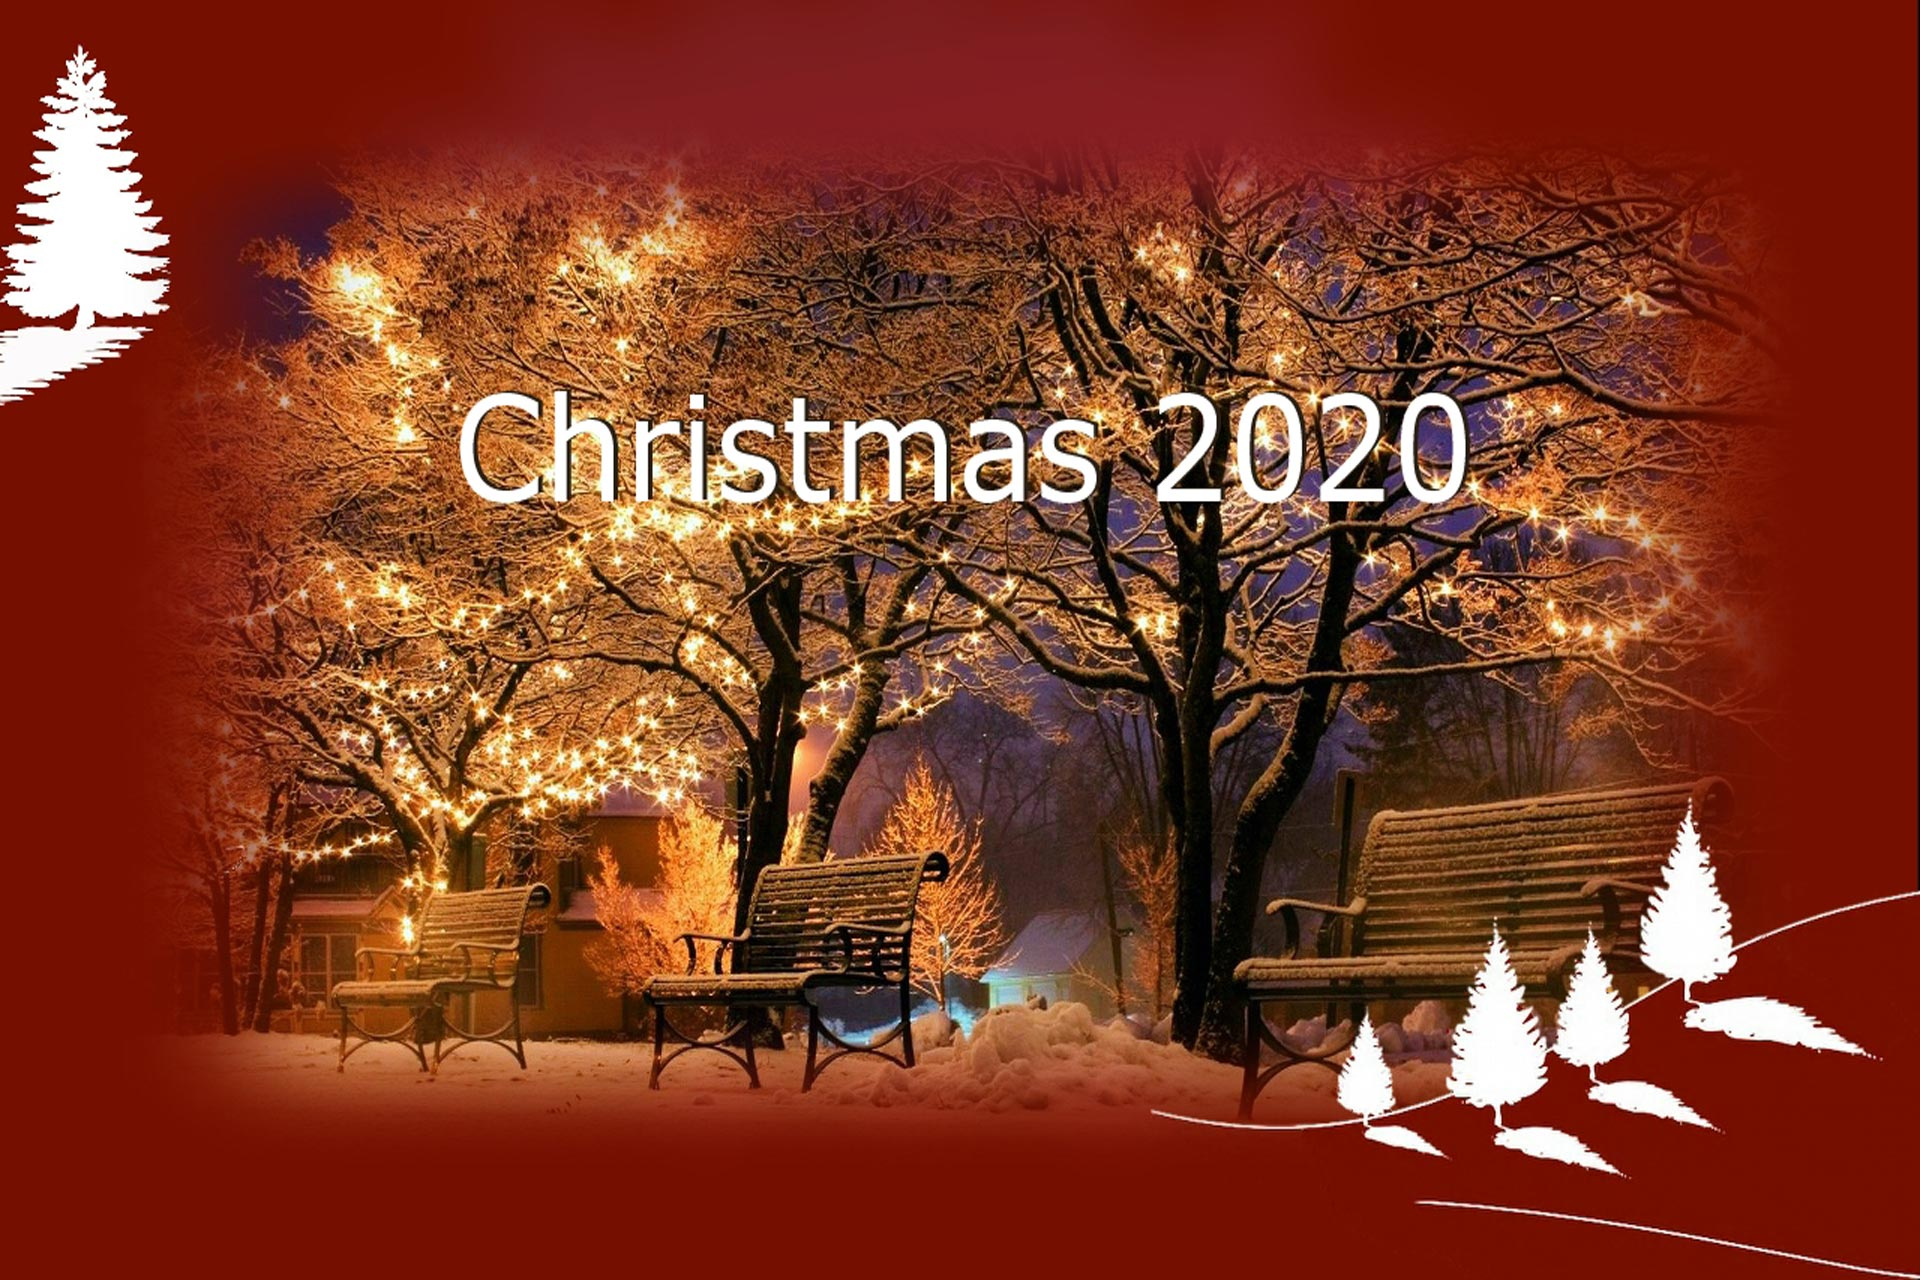 Christmas 2020: different and inspiring